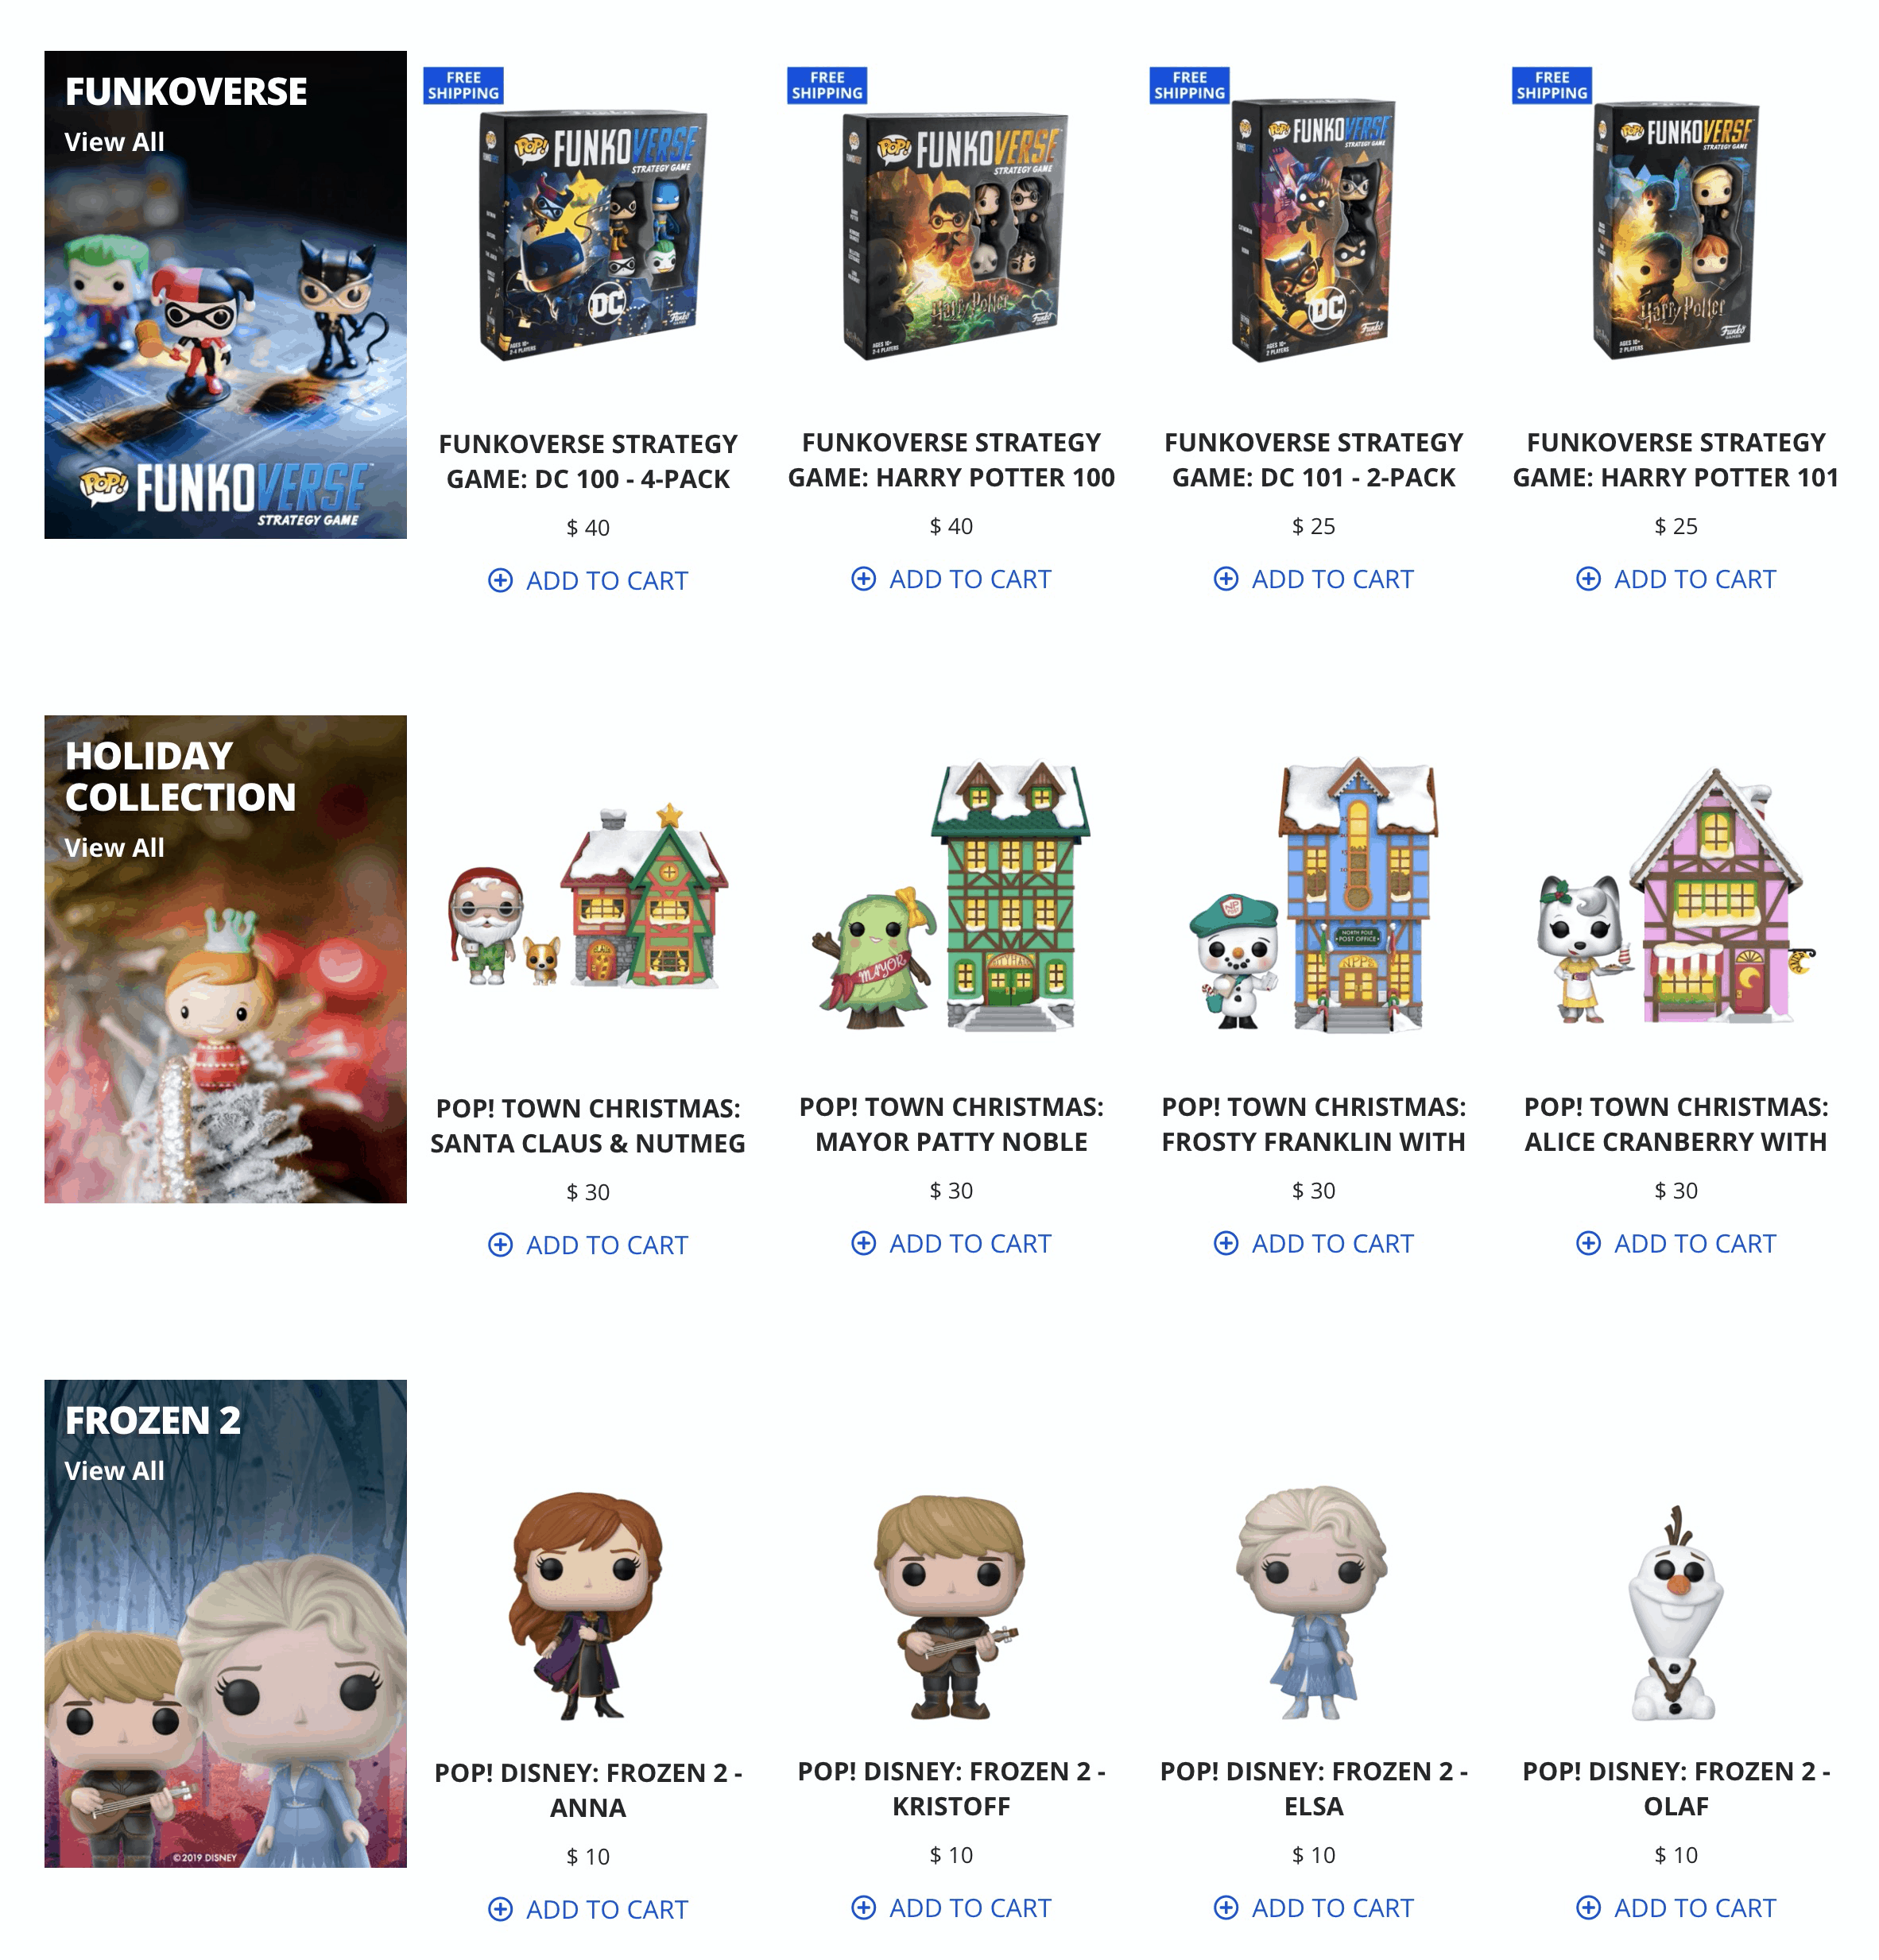 Funko Black Friday 2019 Coupon: Get 20% Off Sitewide + Free Shipping On $50+ Purchase!